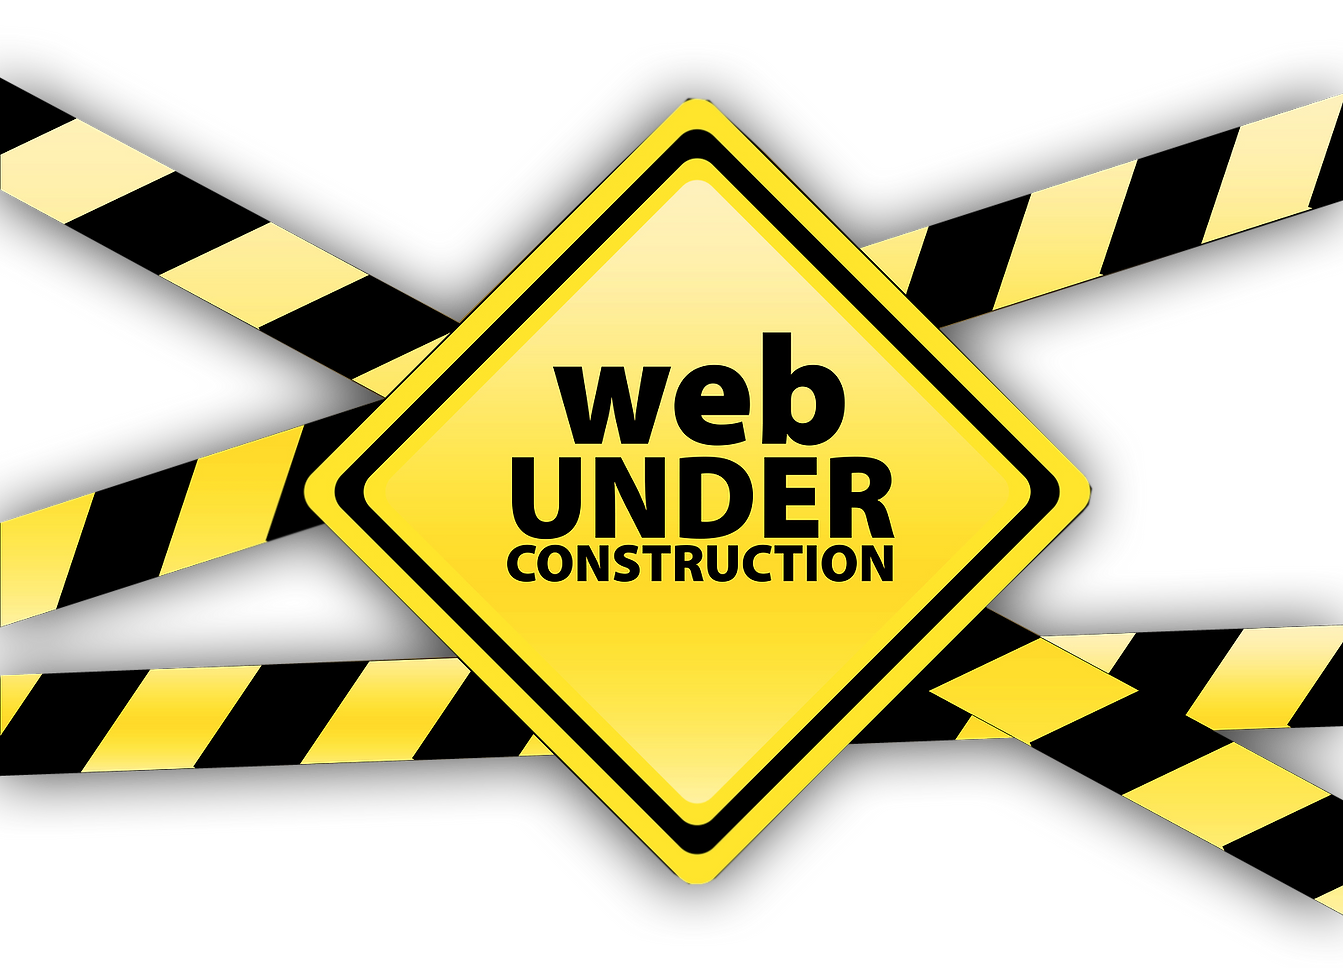 Under-Construction-PNG-File-Download-Fre